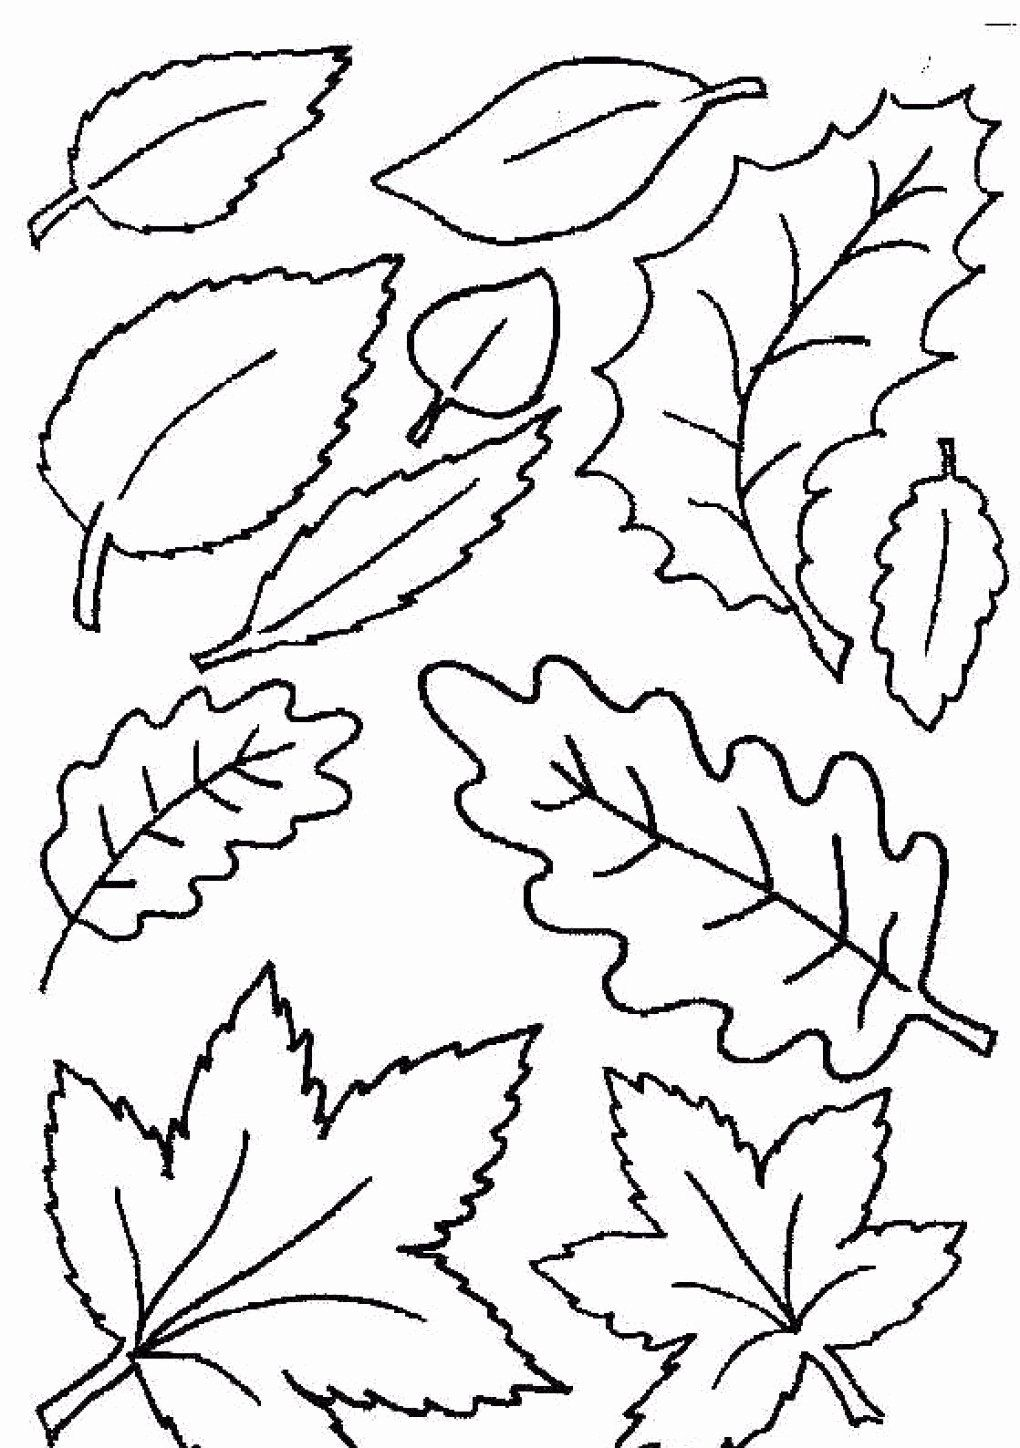 Coloring Book Tree With Leaves New Coloring Books Fall Leavesoring